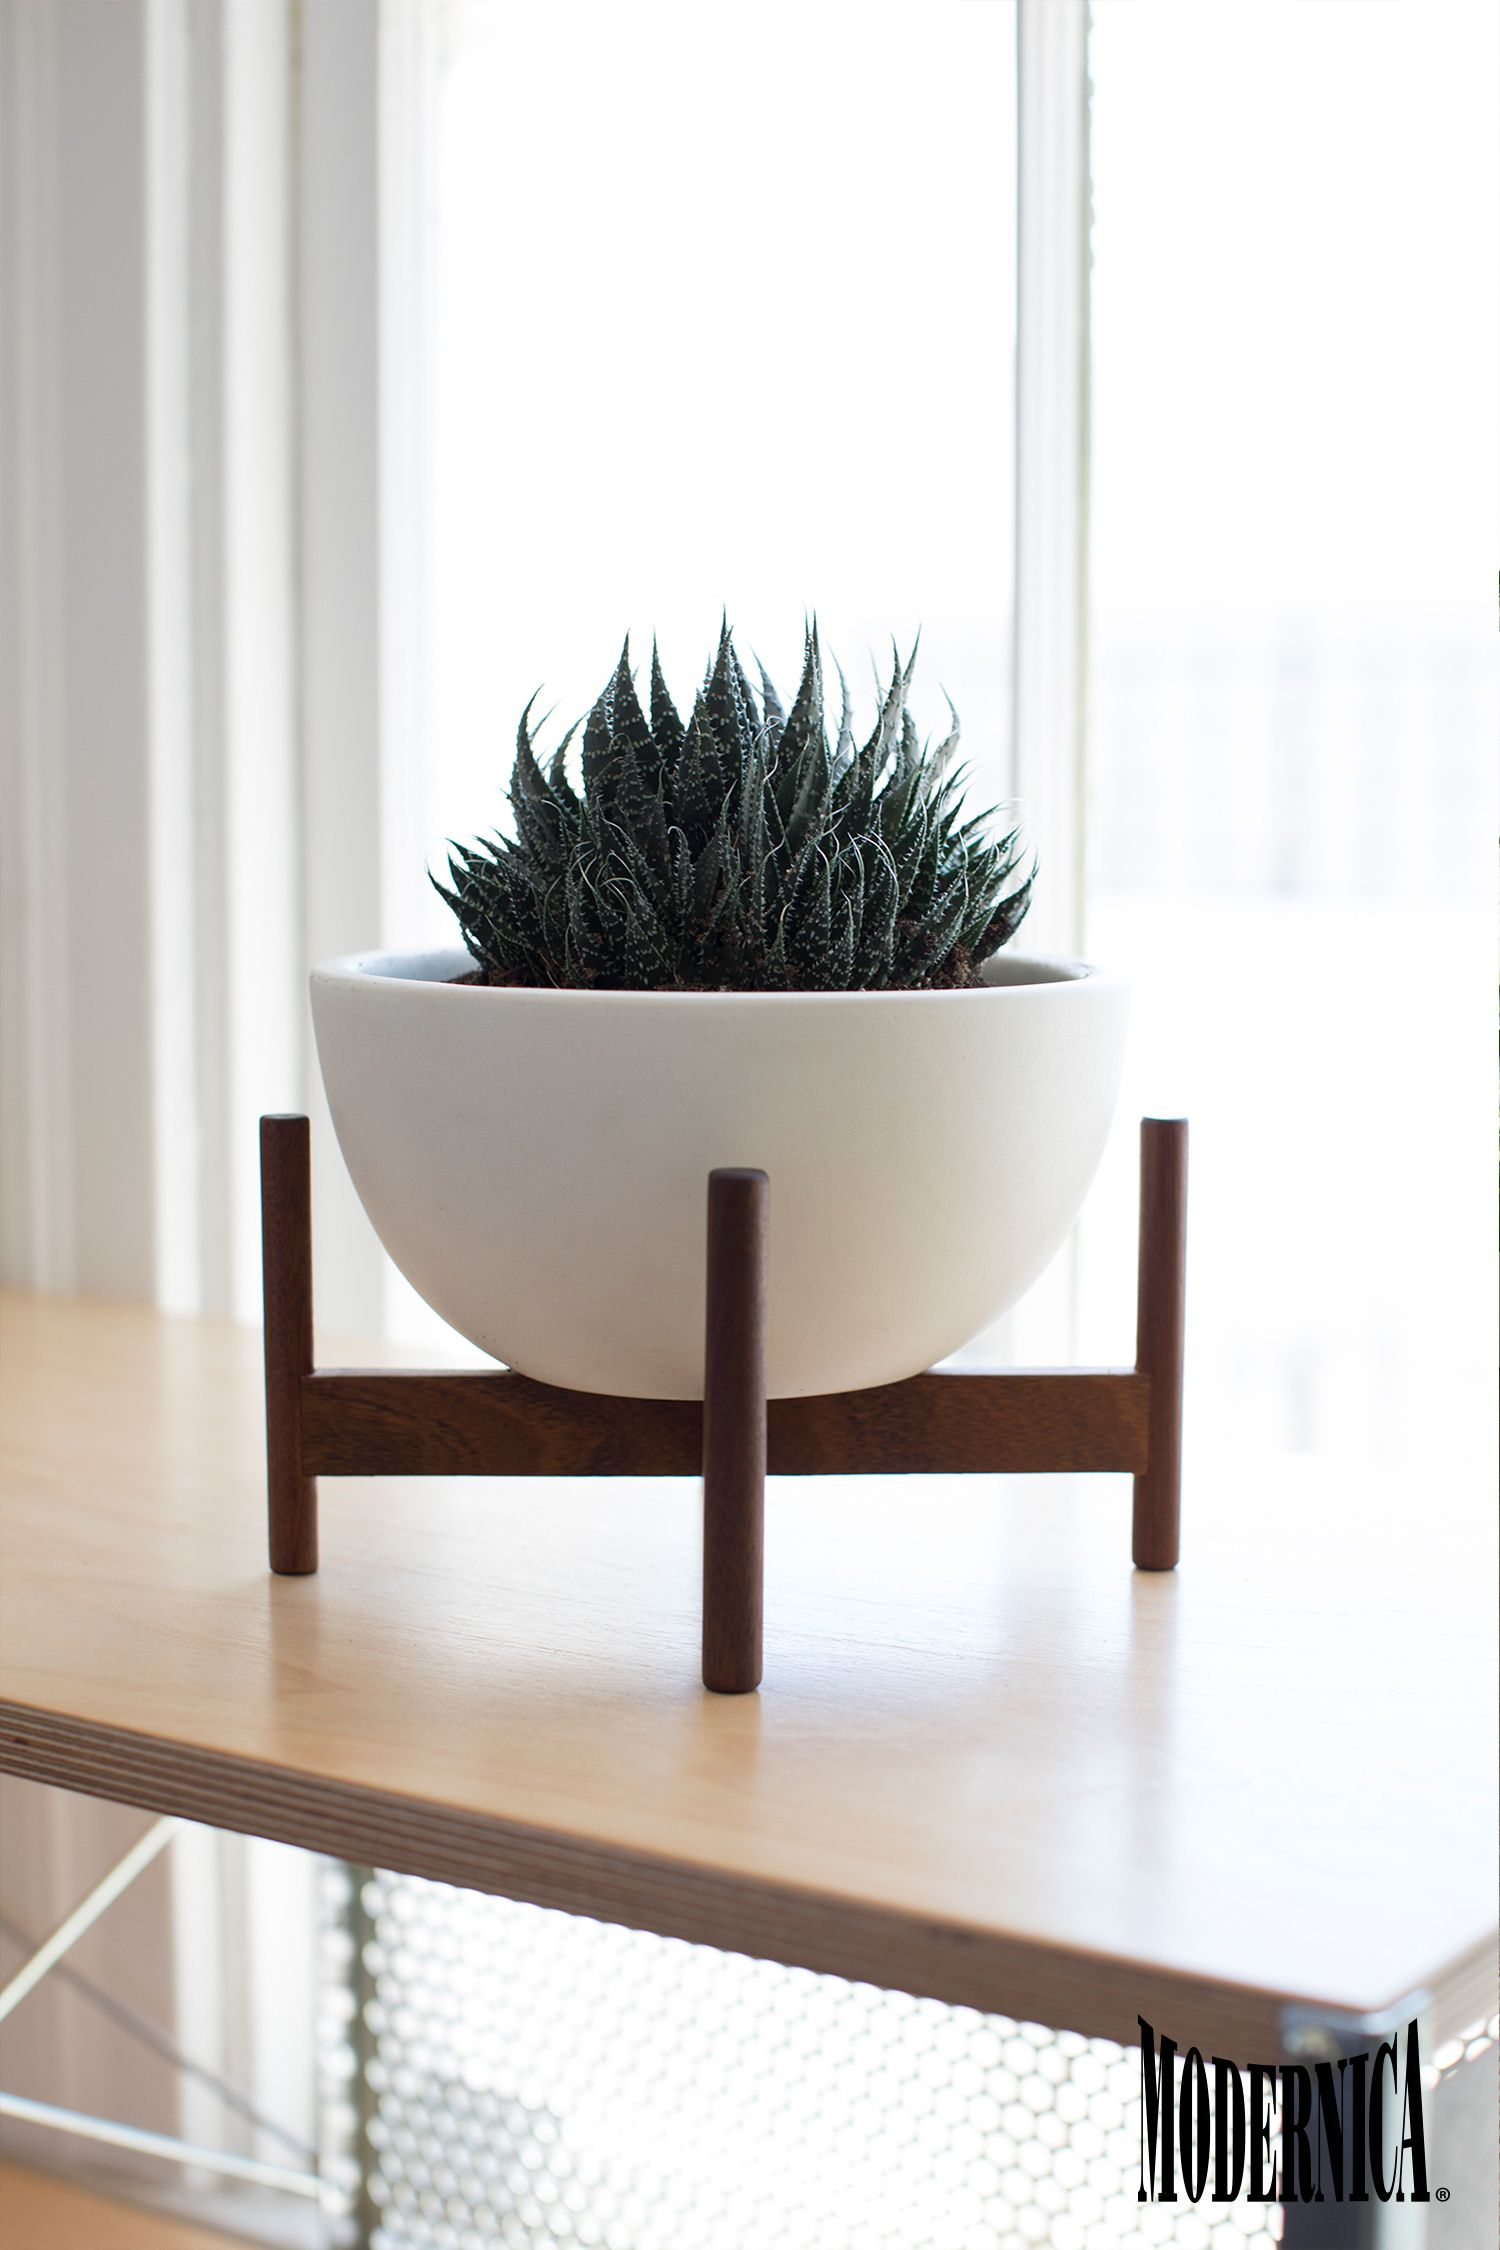 Modernica Case Study Table Top Bowl w Stand